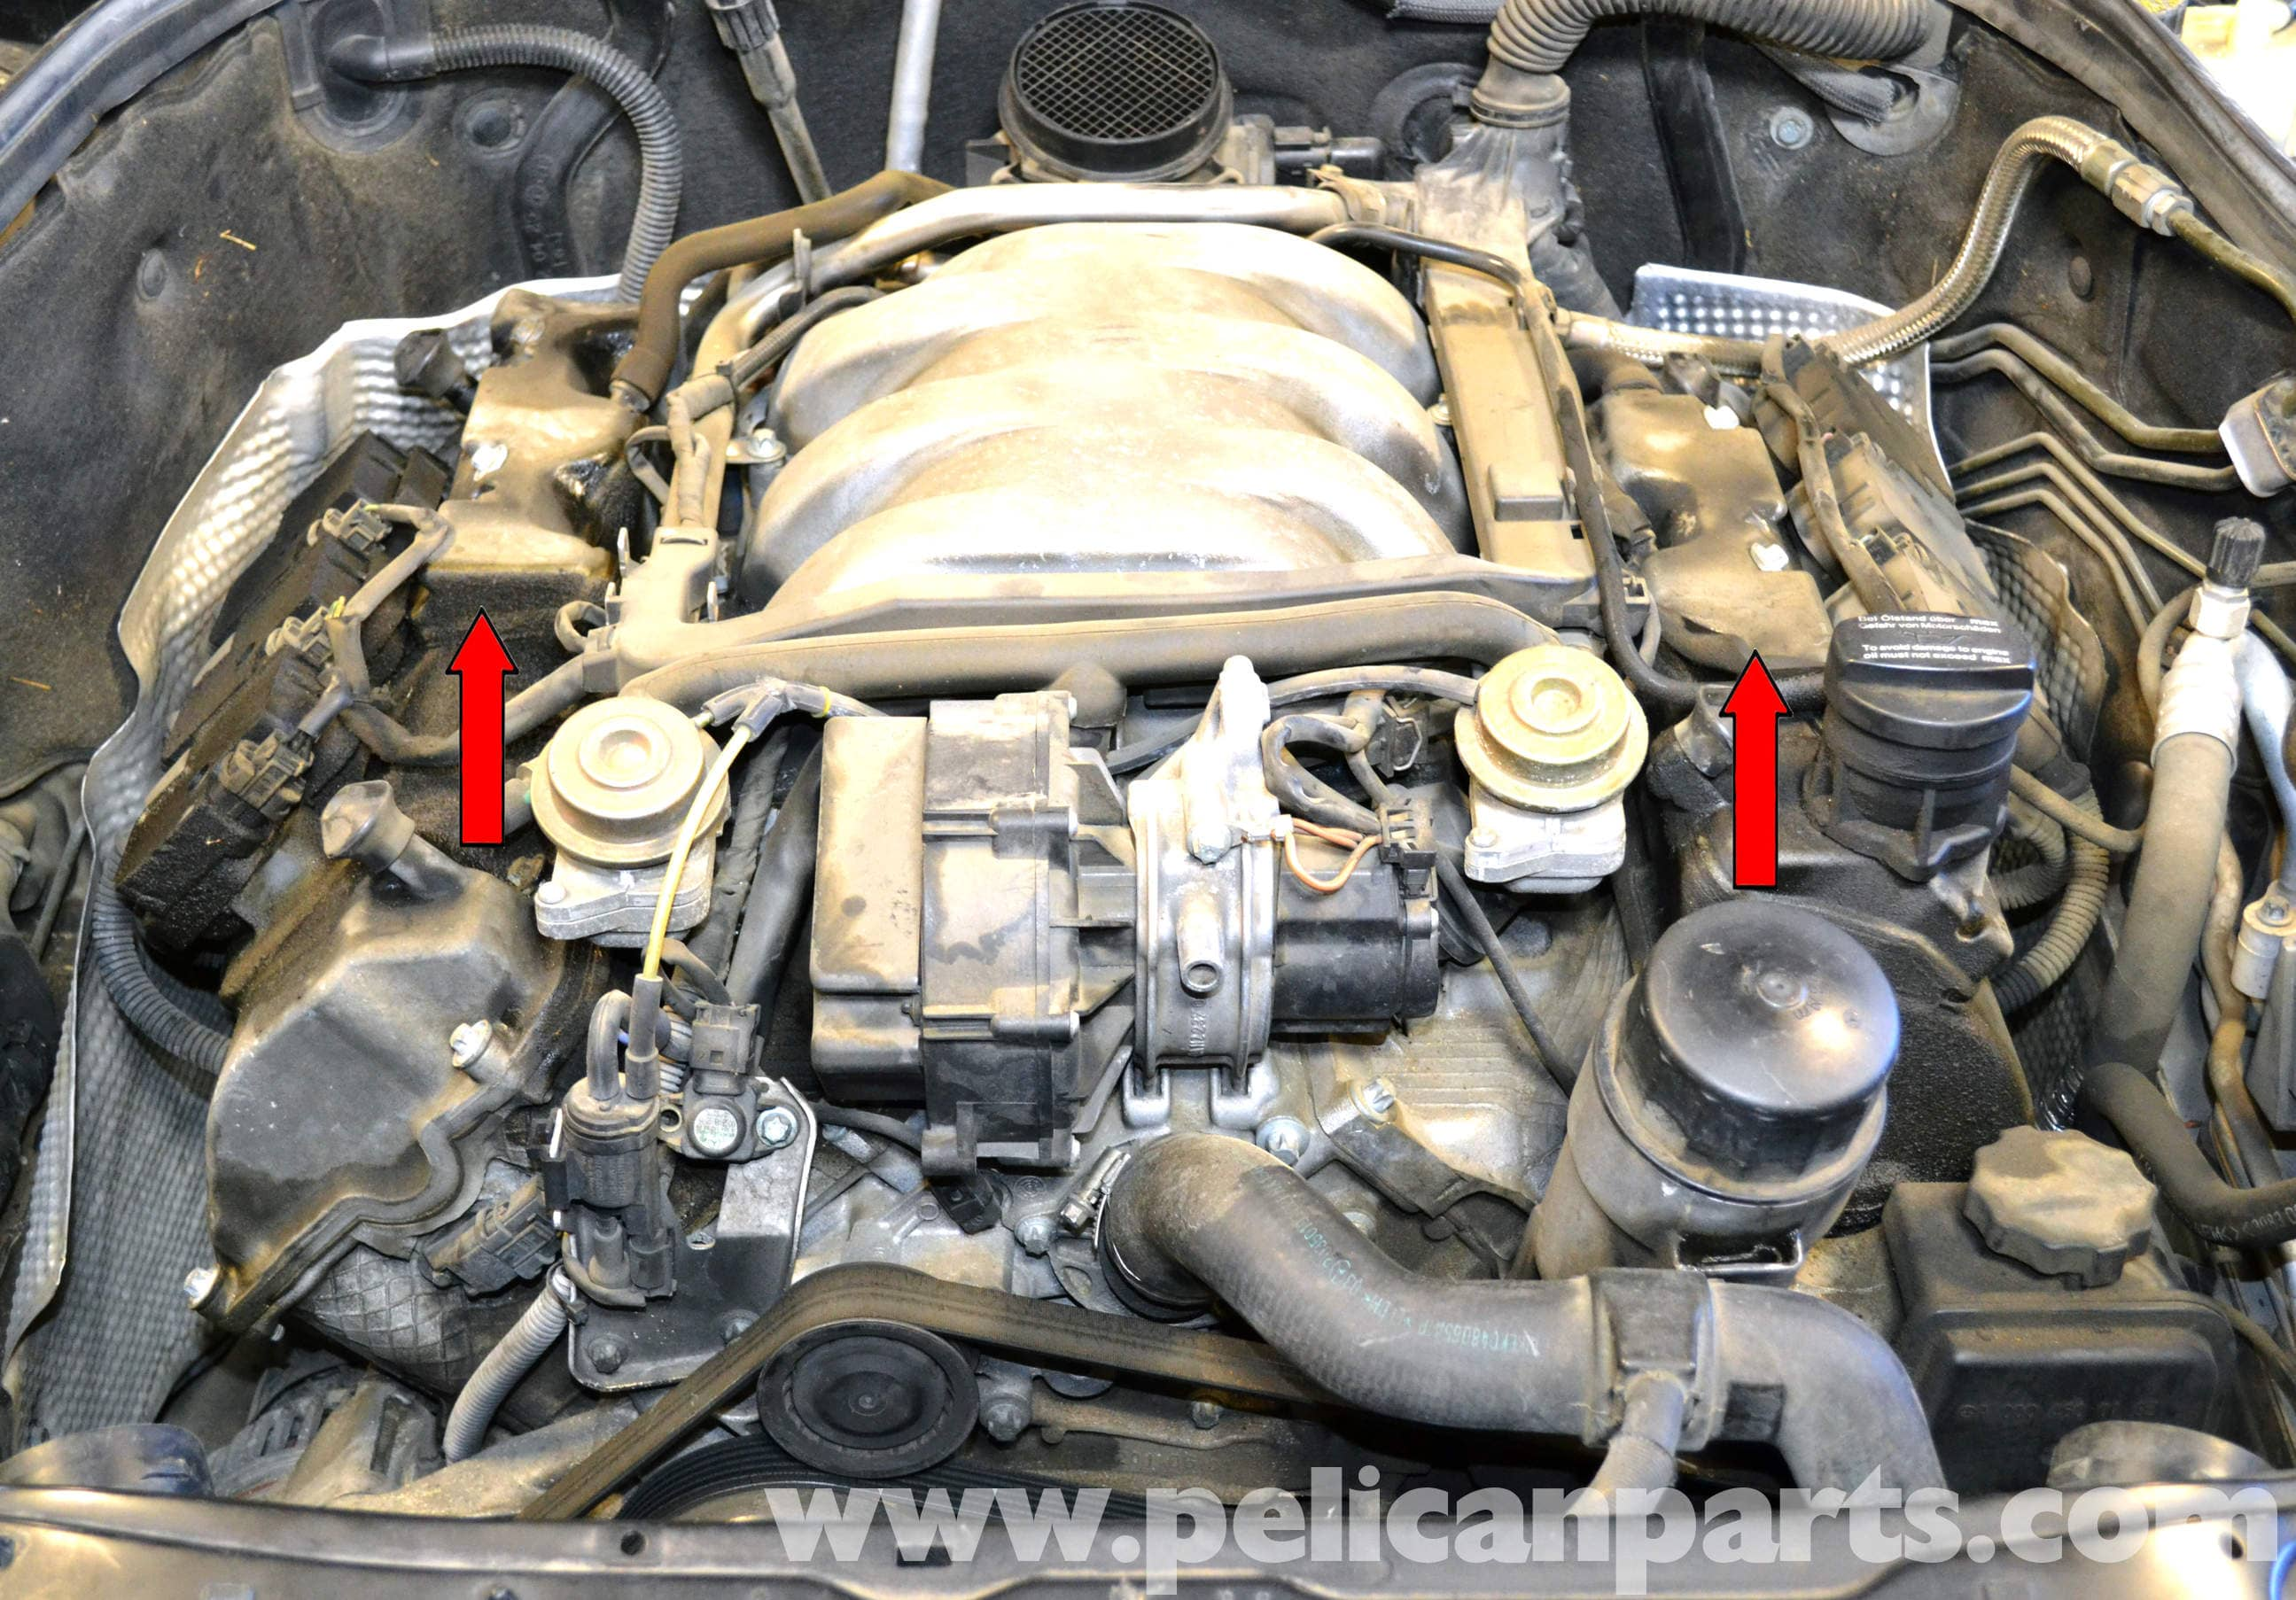 mercedes c280 engine diagram wiring diagram tutorial Parts for Mercedes E320 mercedes benz w203 valve cover gasket replacement (2001 2007) c230 mercedes c280 engine diagram